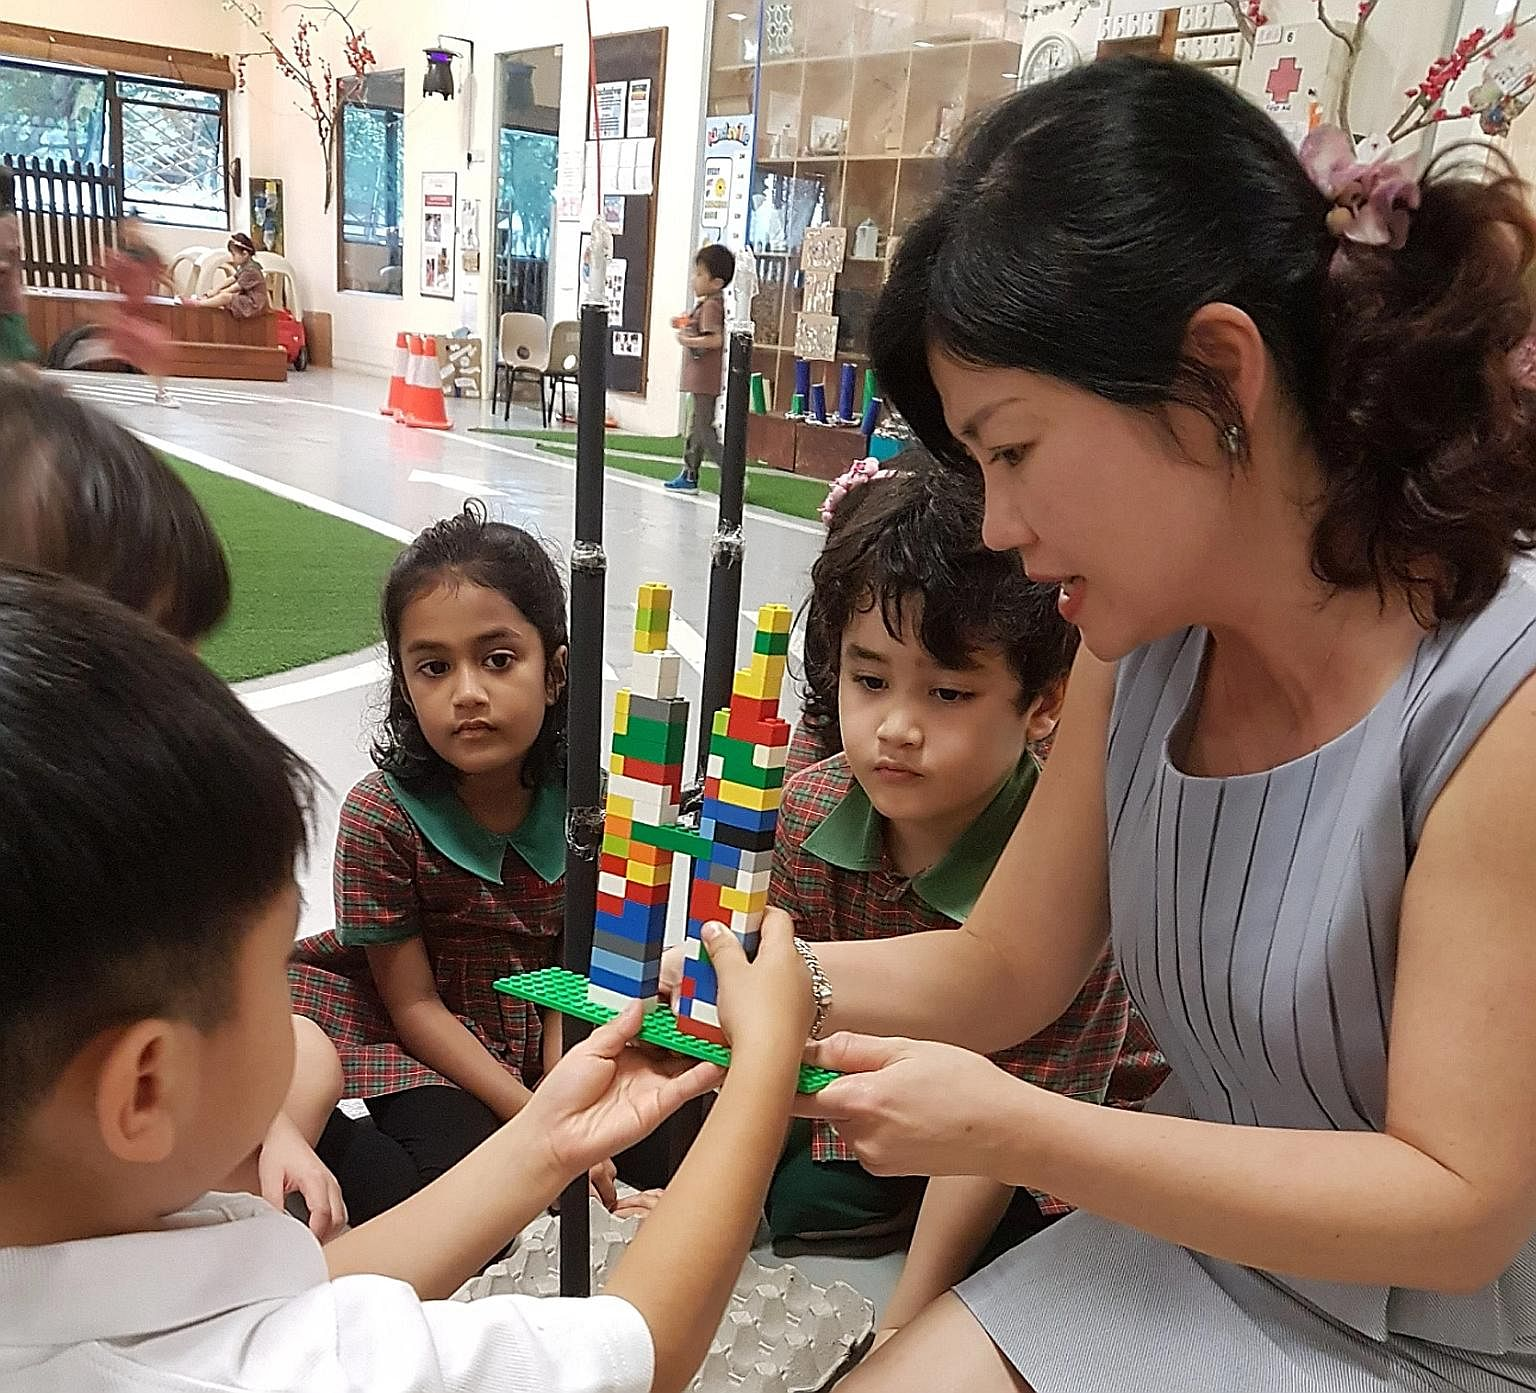 EtonHouse Pre-School Mountbatten 223 senior principal Josephyne Ho, 50, interacting with pupils. She joined the international school group in 2003 after a decade with SIA Group.